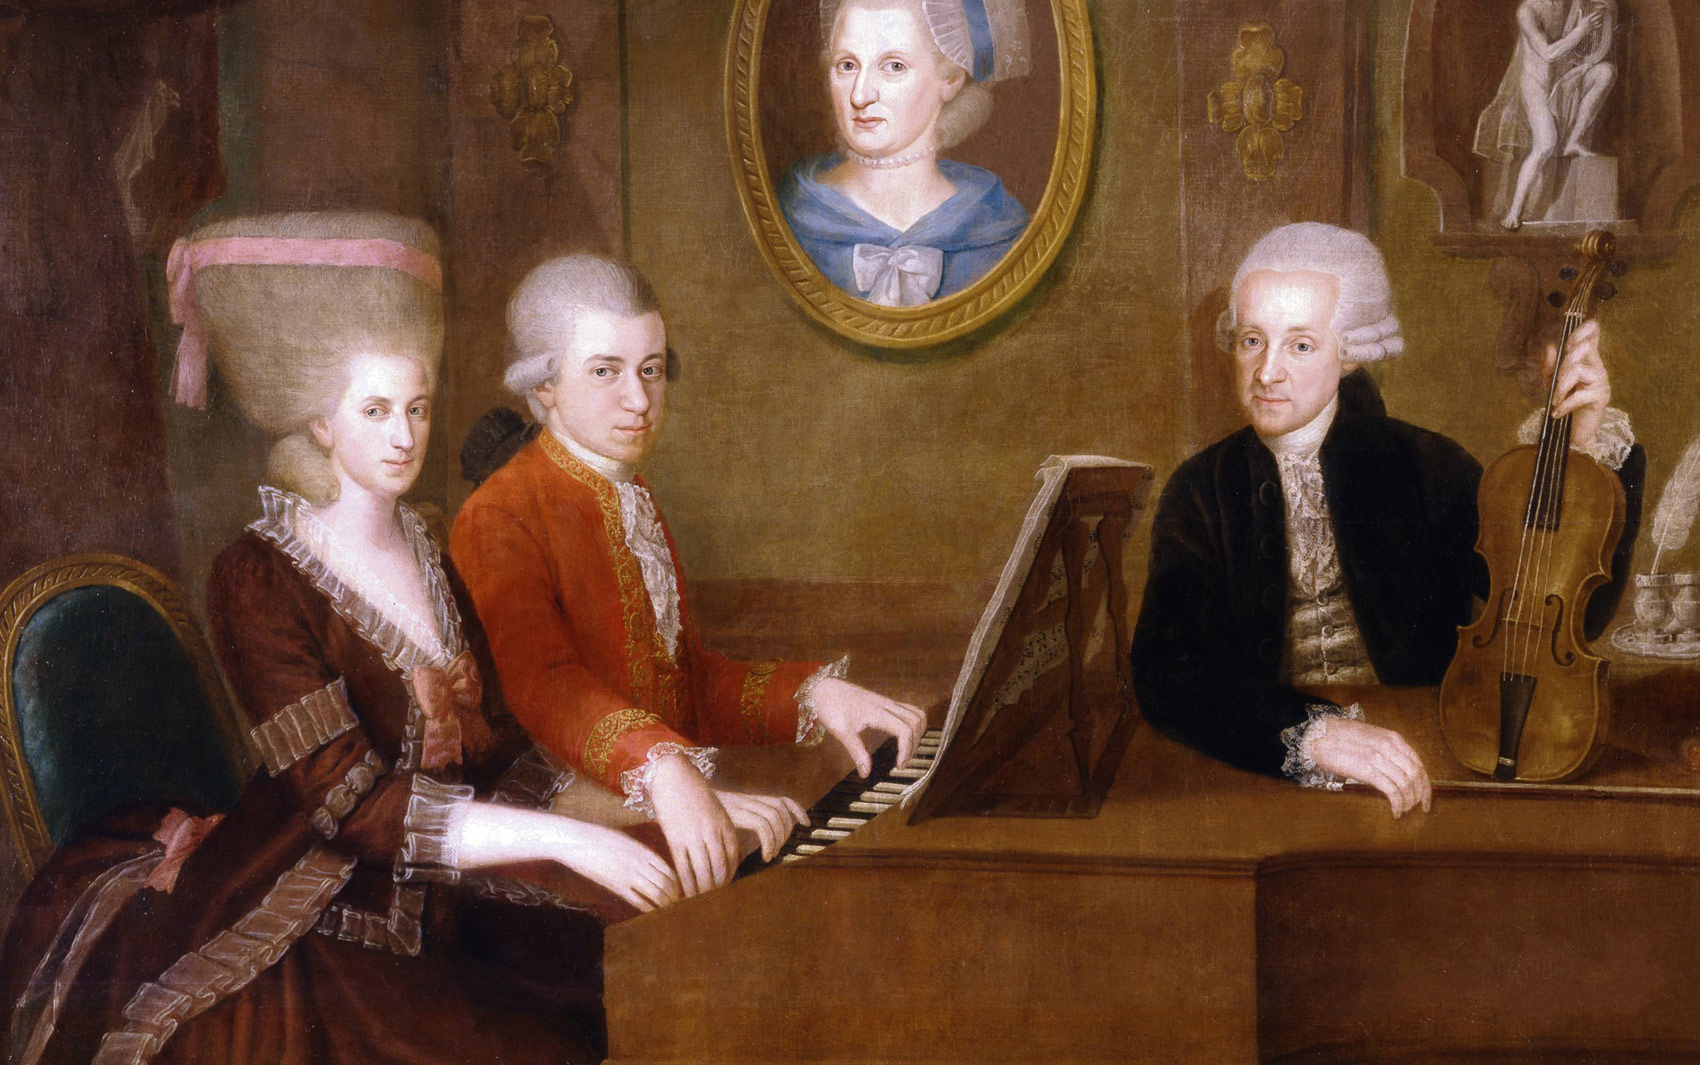 Loophole Mozart, father of Wolfgang Amadeus Mozart, was the only music teacher Mozart had growing up. Teach and be taught by Jerald Simon (Music Motivation).